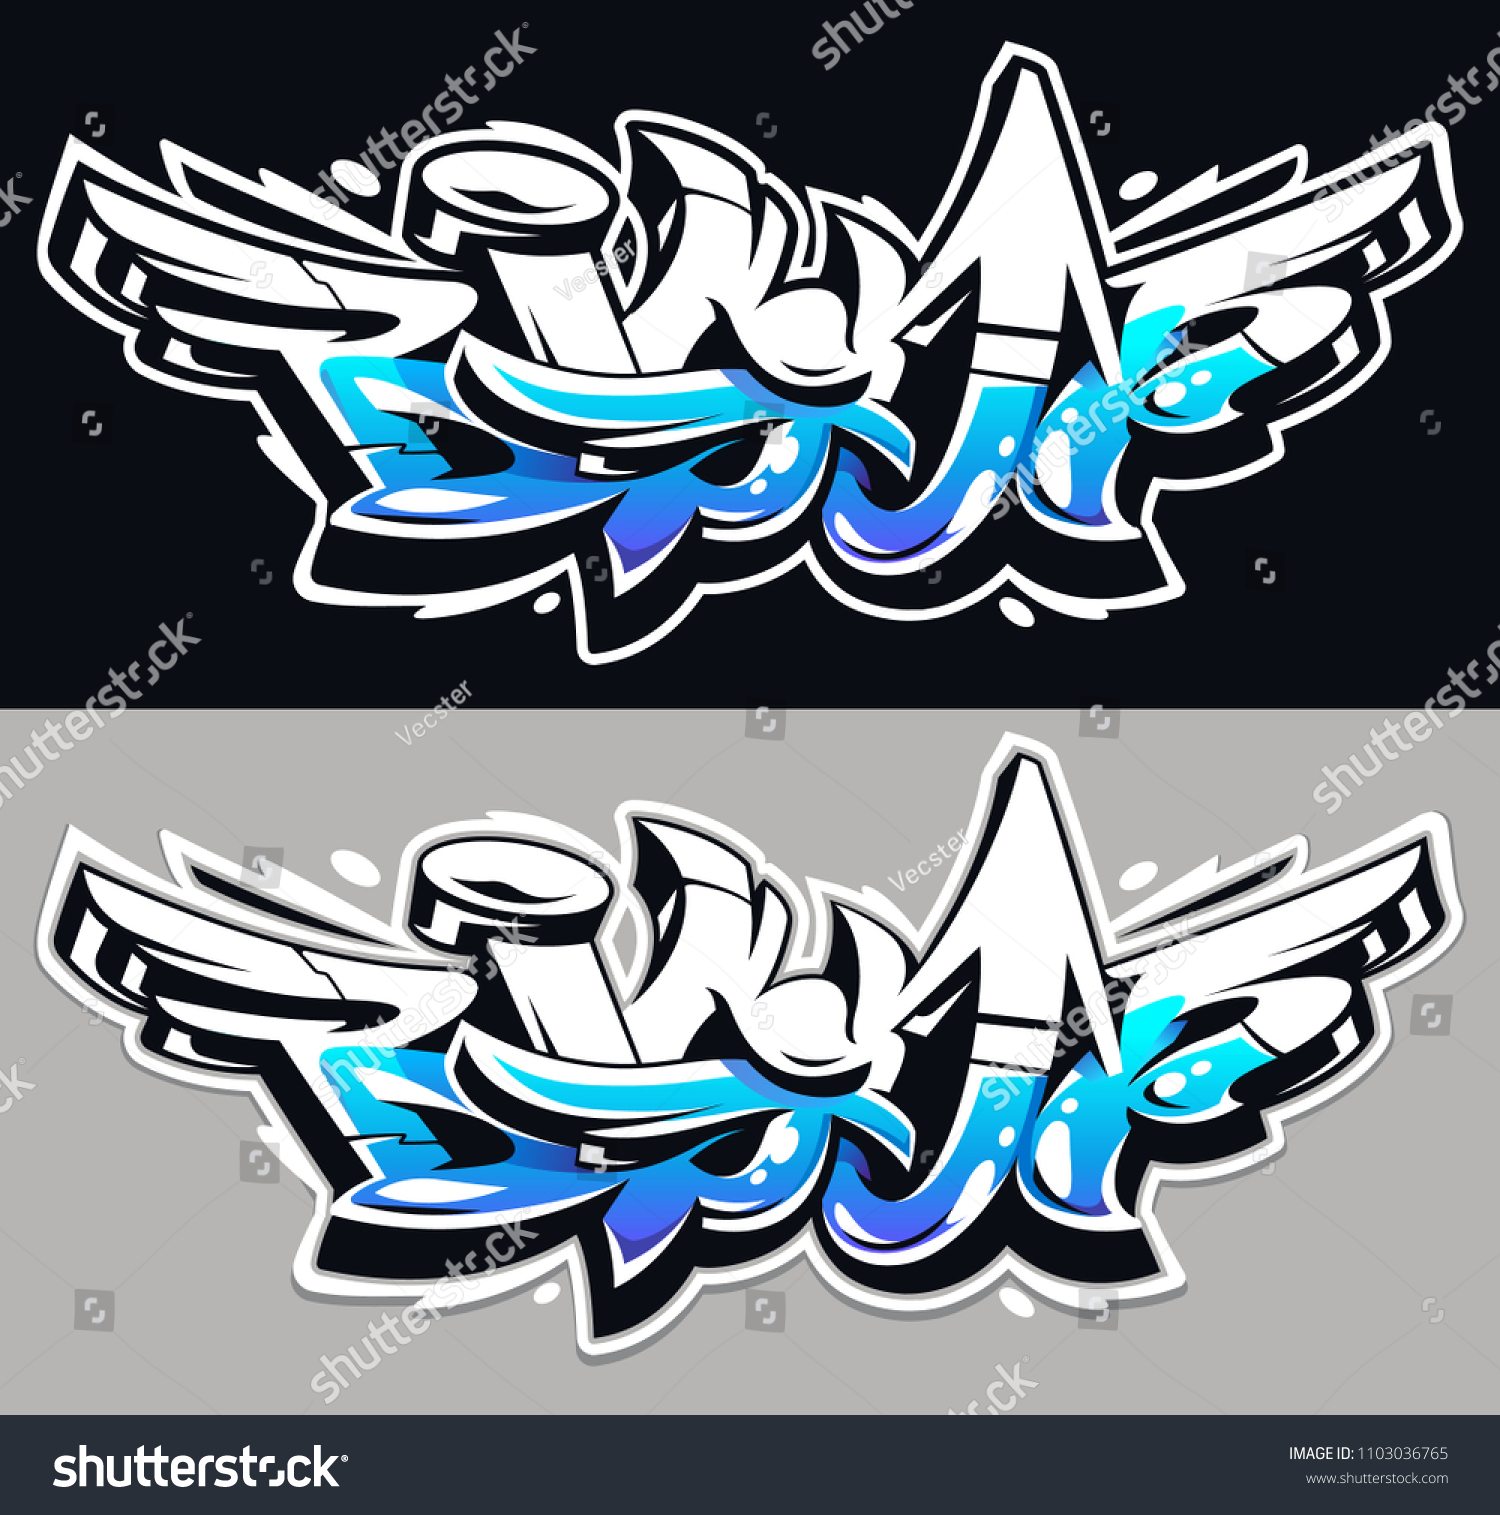 Big up blue color vector lettering on grey and black backgrounds dynamic wild style graffiti